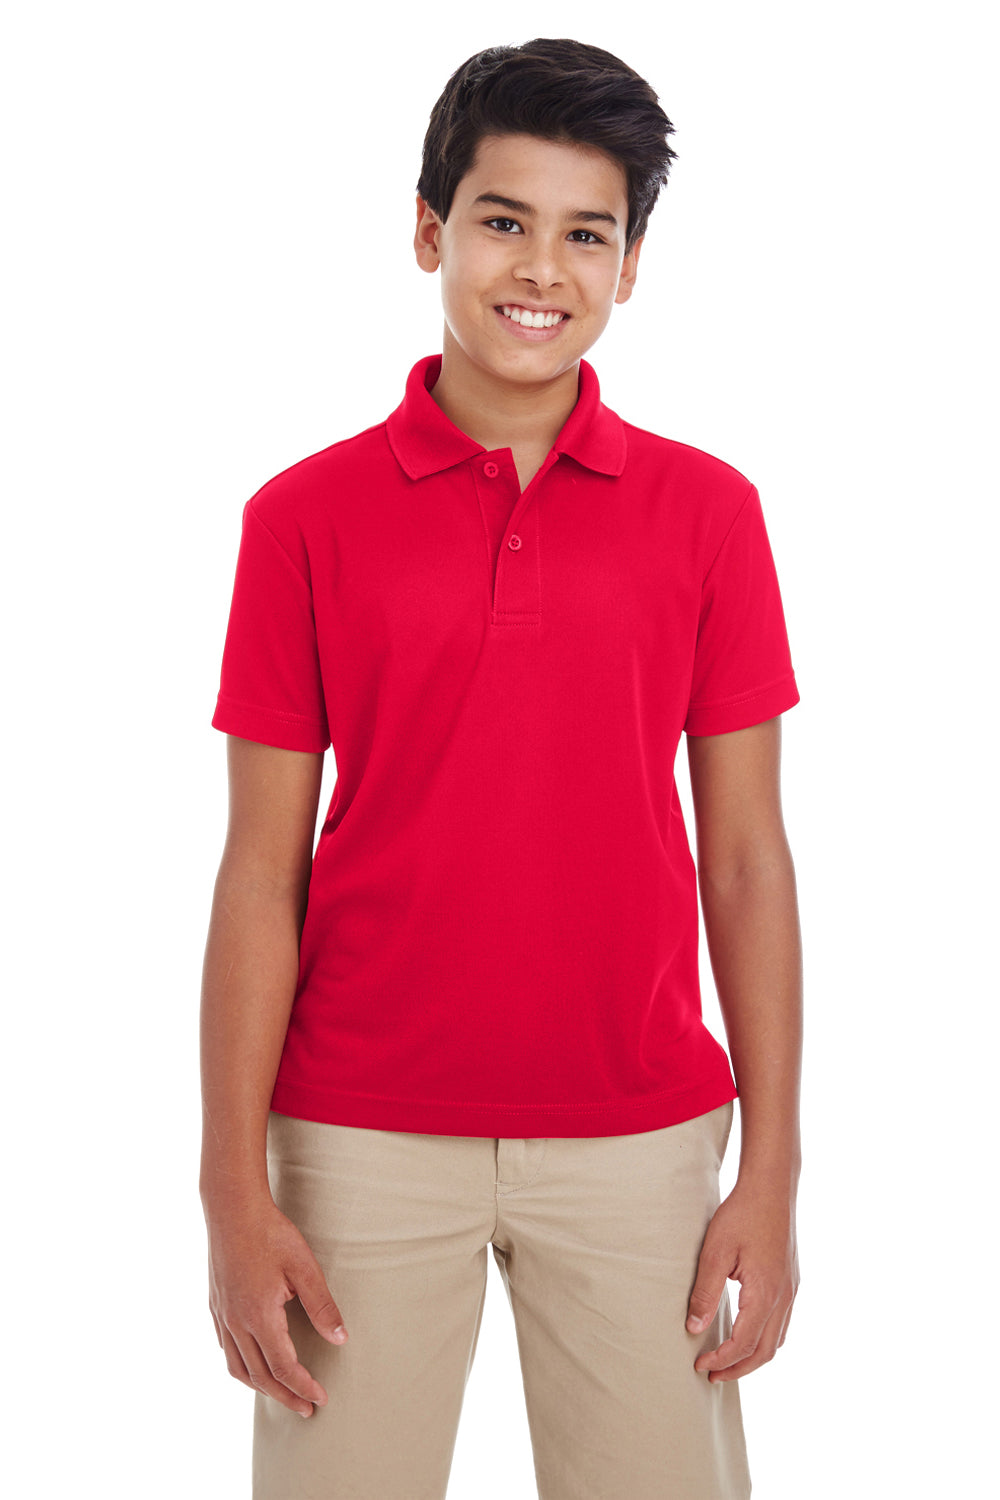 Core 365 88181Y Youth Origin Performance Moisture Wicking Short Sleeve Polo Shirt Red Front